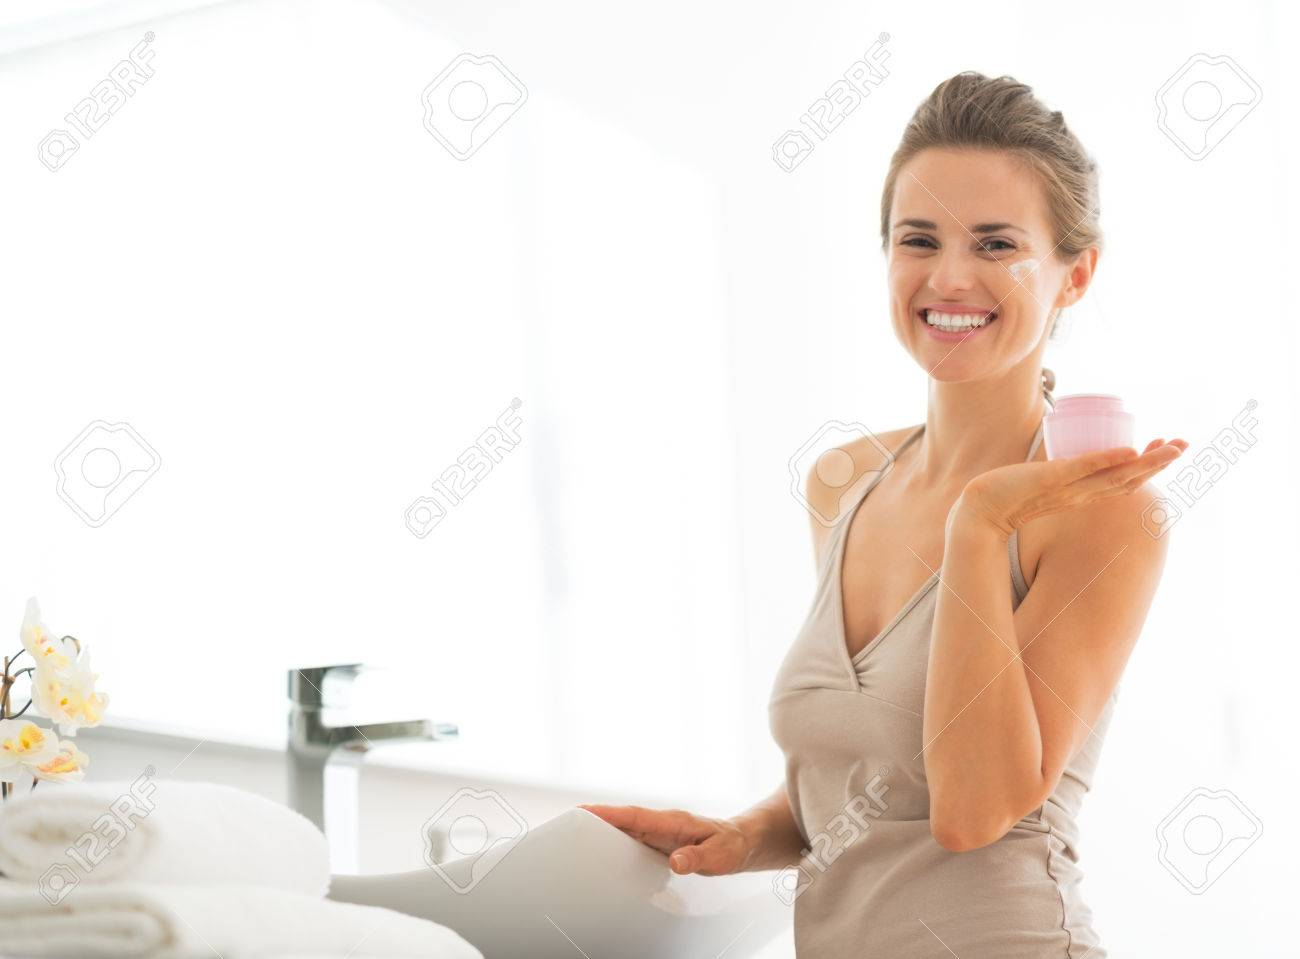 Young woman in bathroom showing cream Stock Photo - 29004537